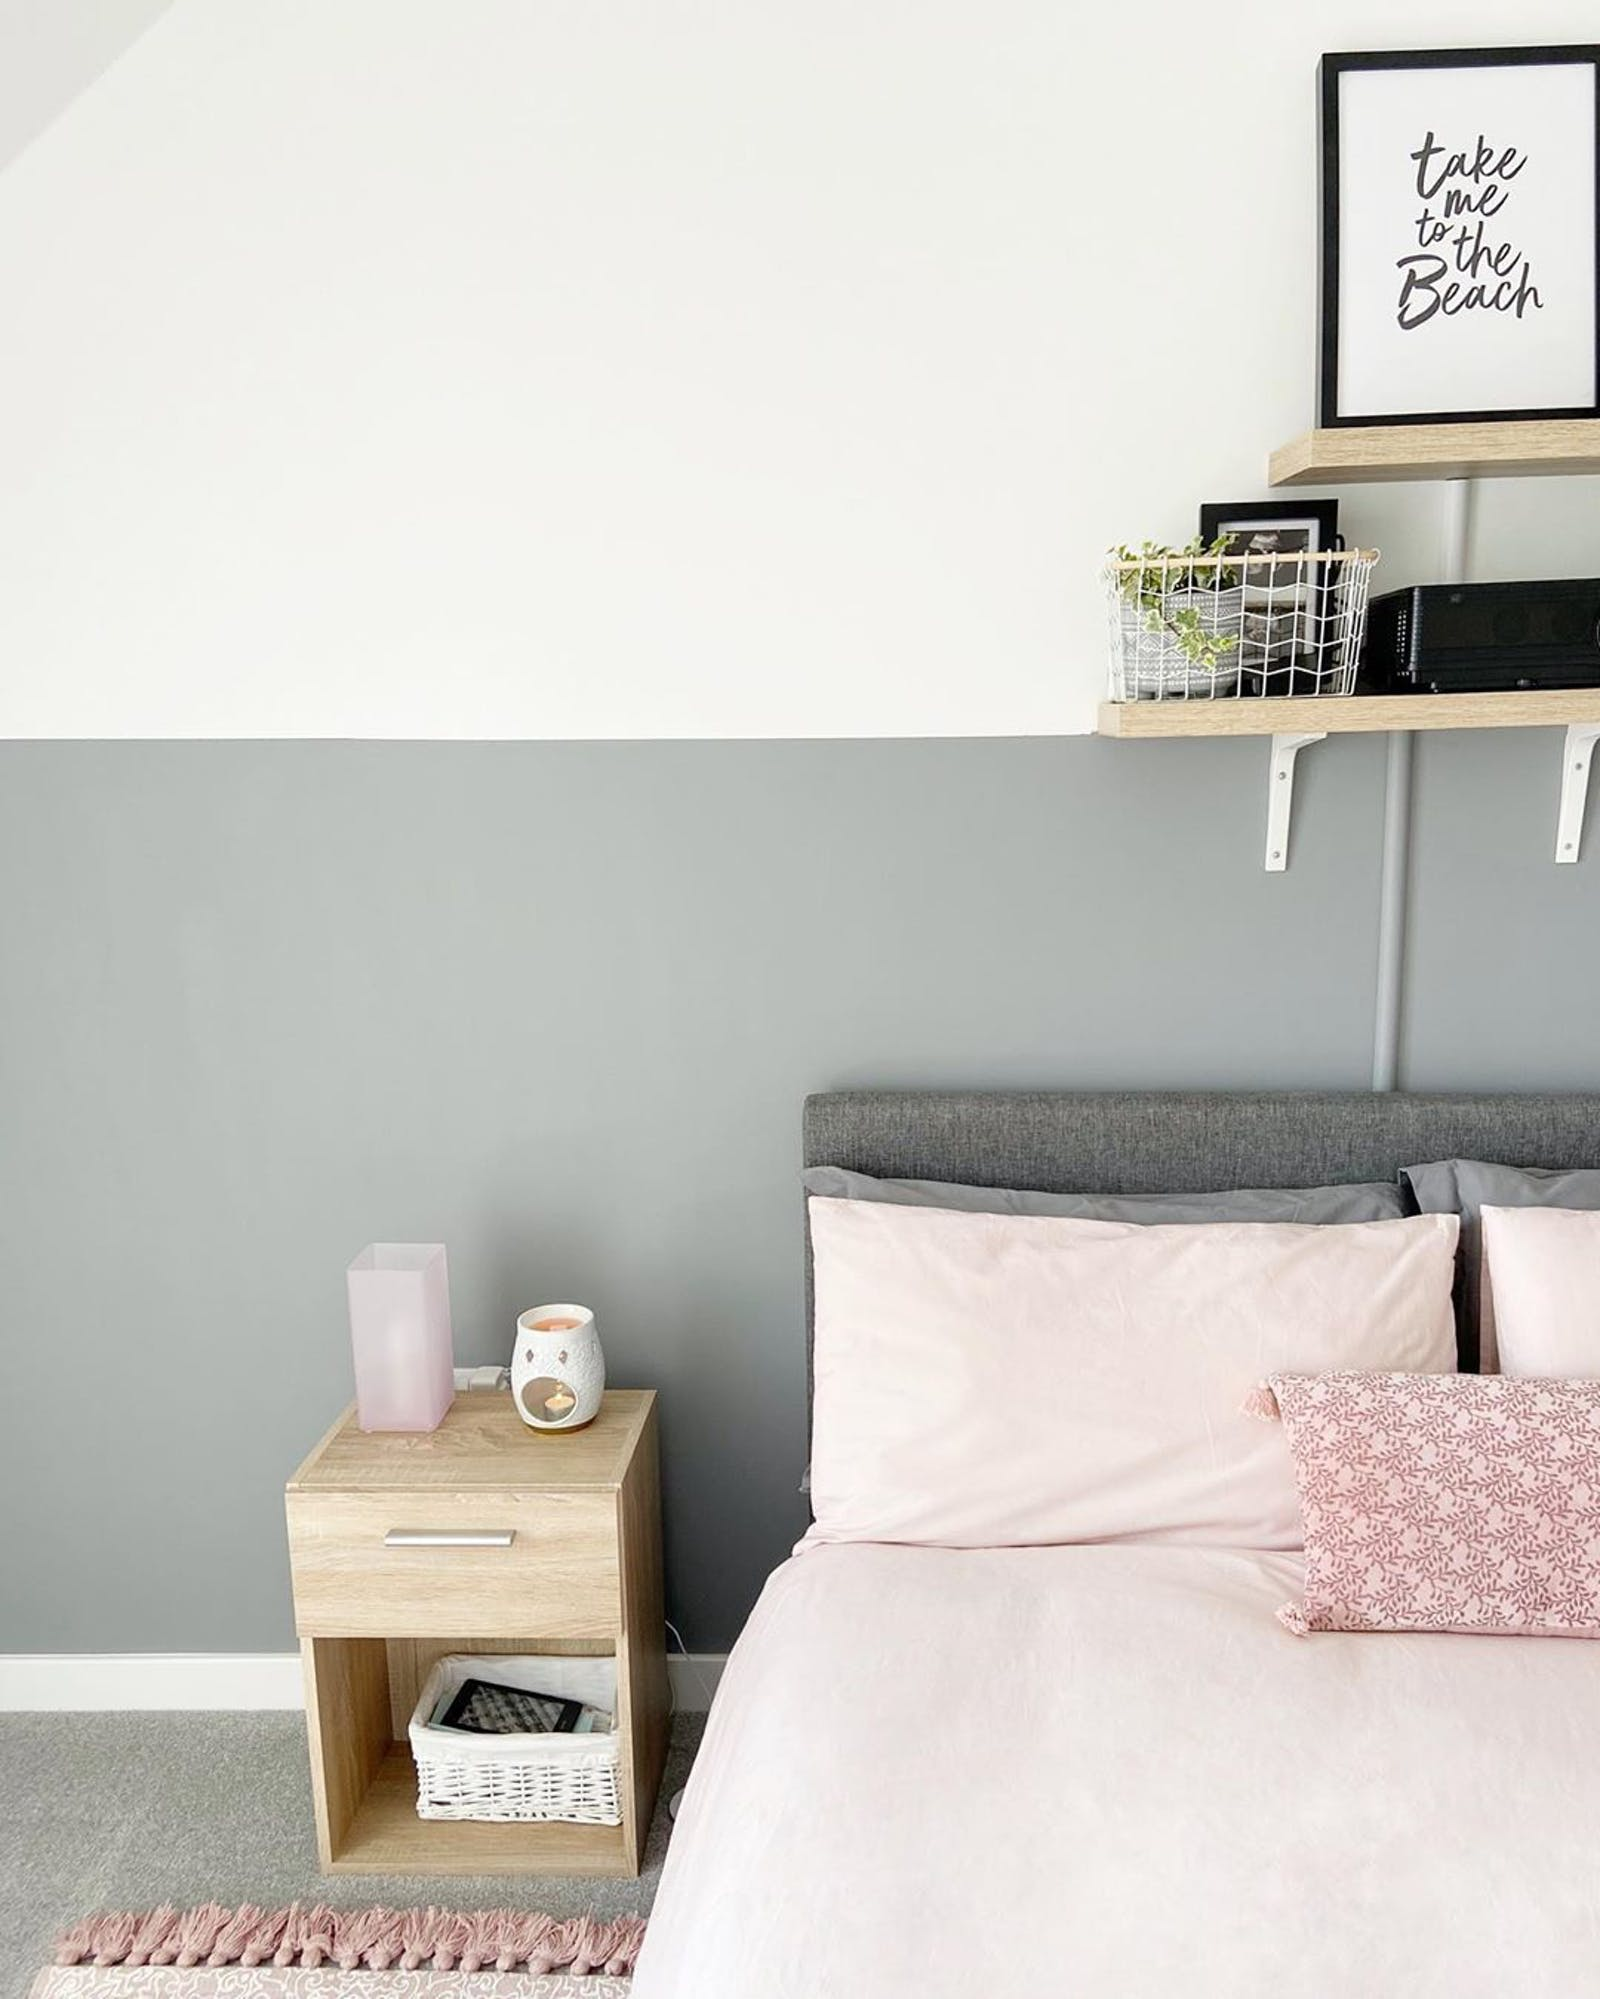 Bedroom painted in Lick Grey 06 with pink bedding and soft furnishings